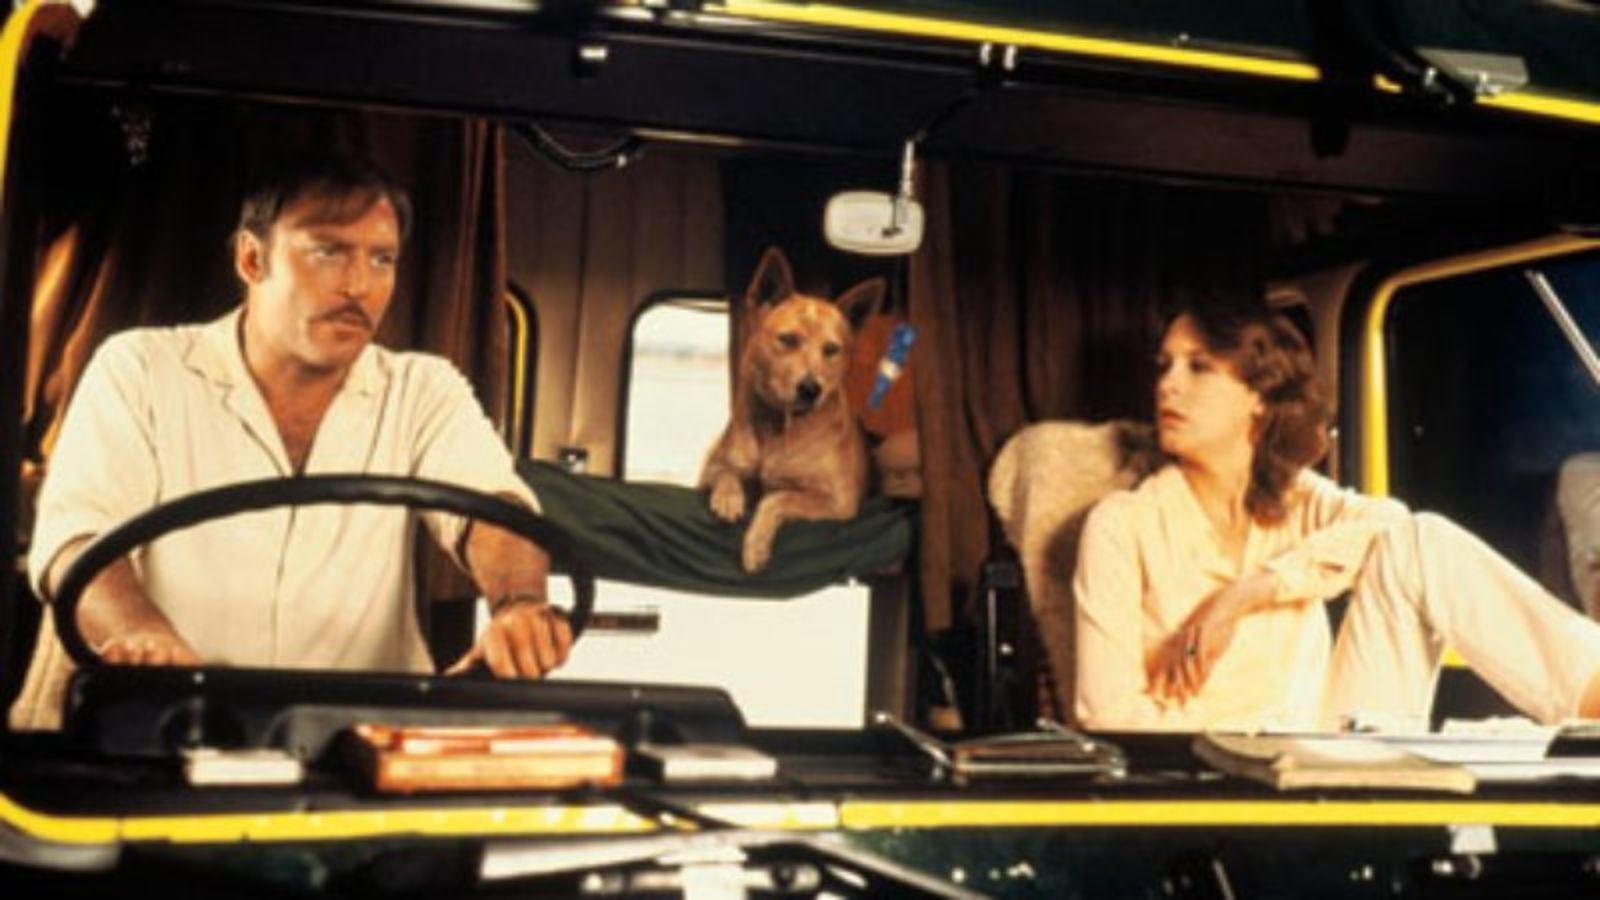 Truck driver Patrick Quid (Stacy Keach) and hitch-hiker Jamie Lee Curtis in Roadgames (1981)